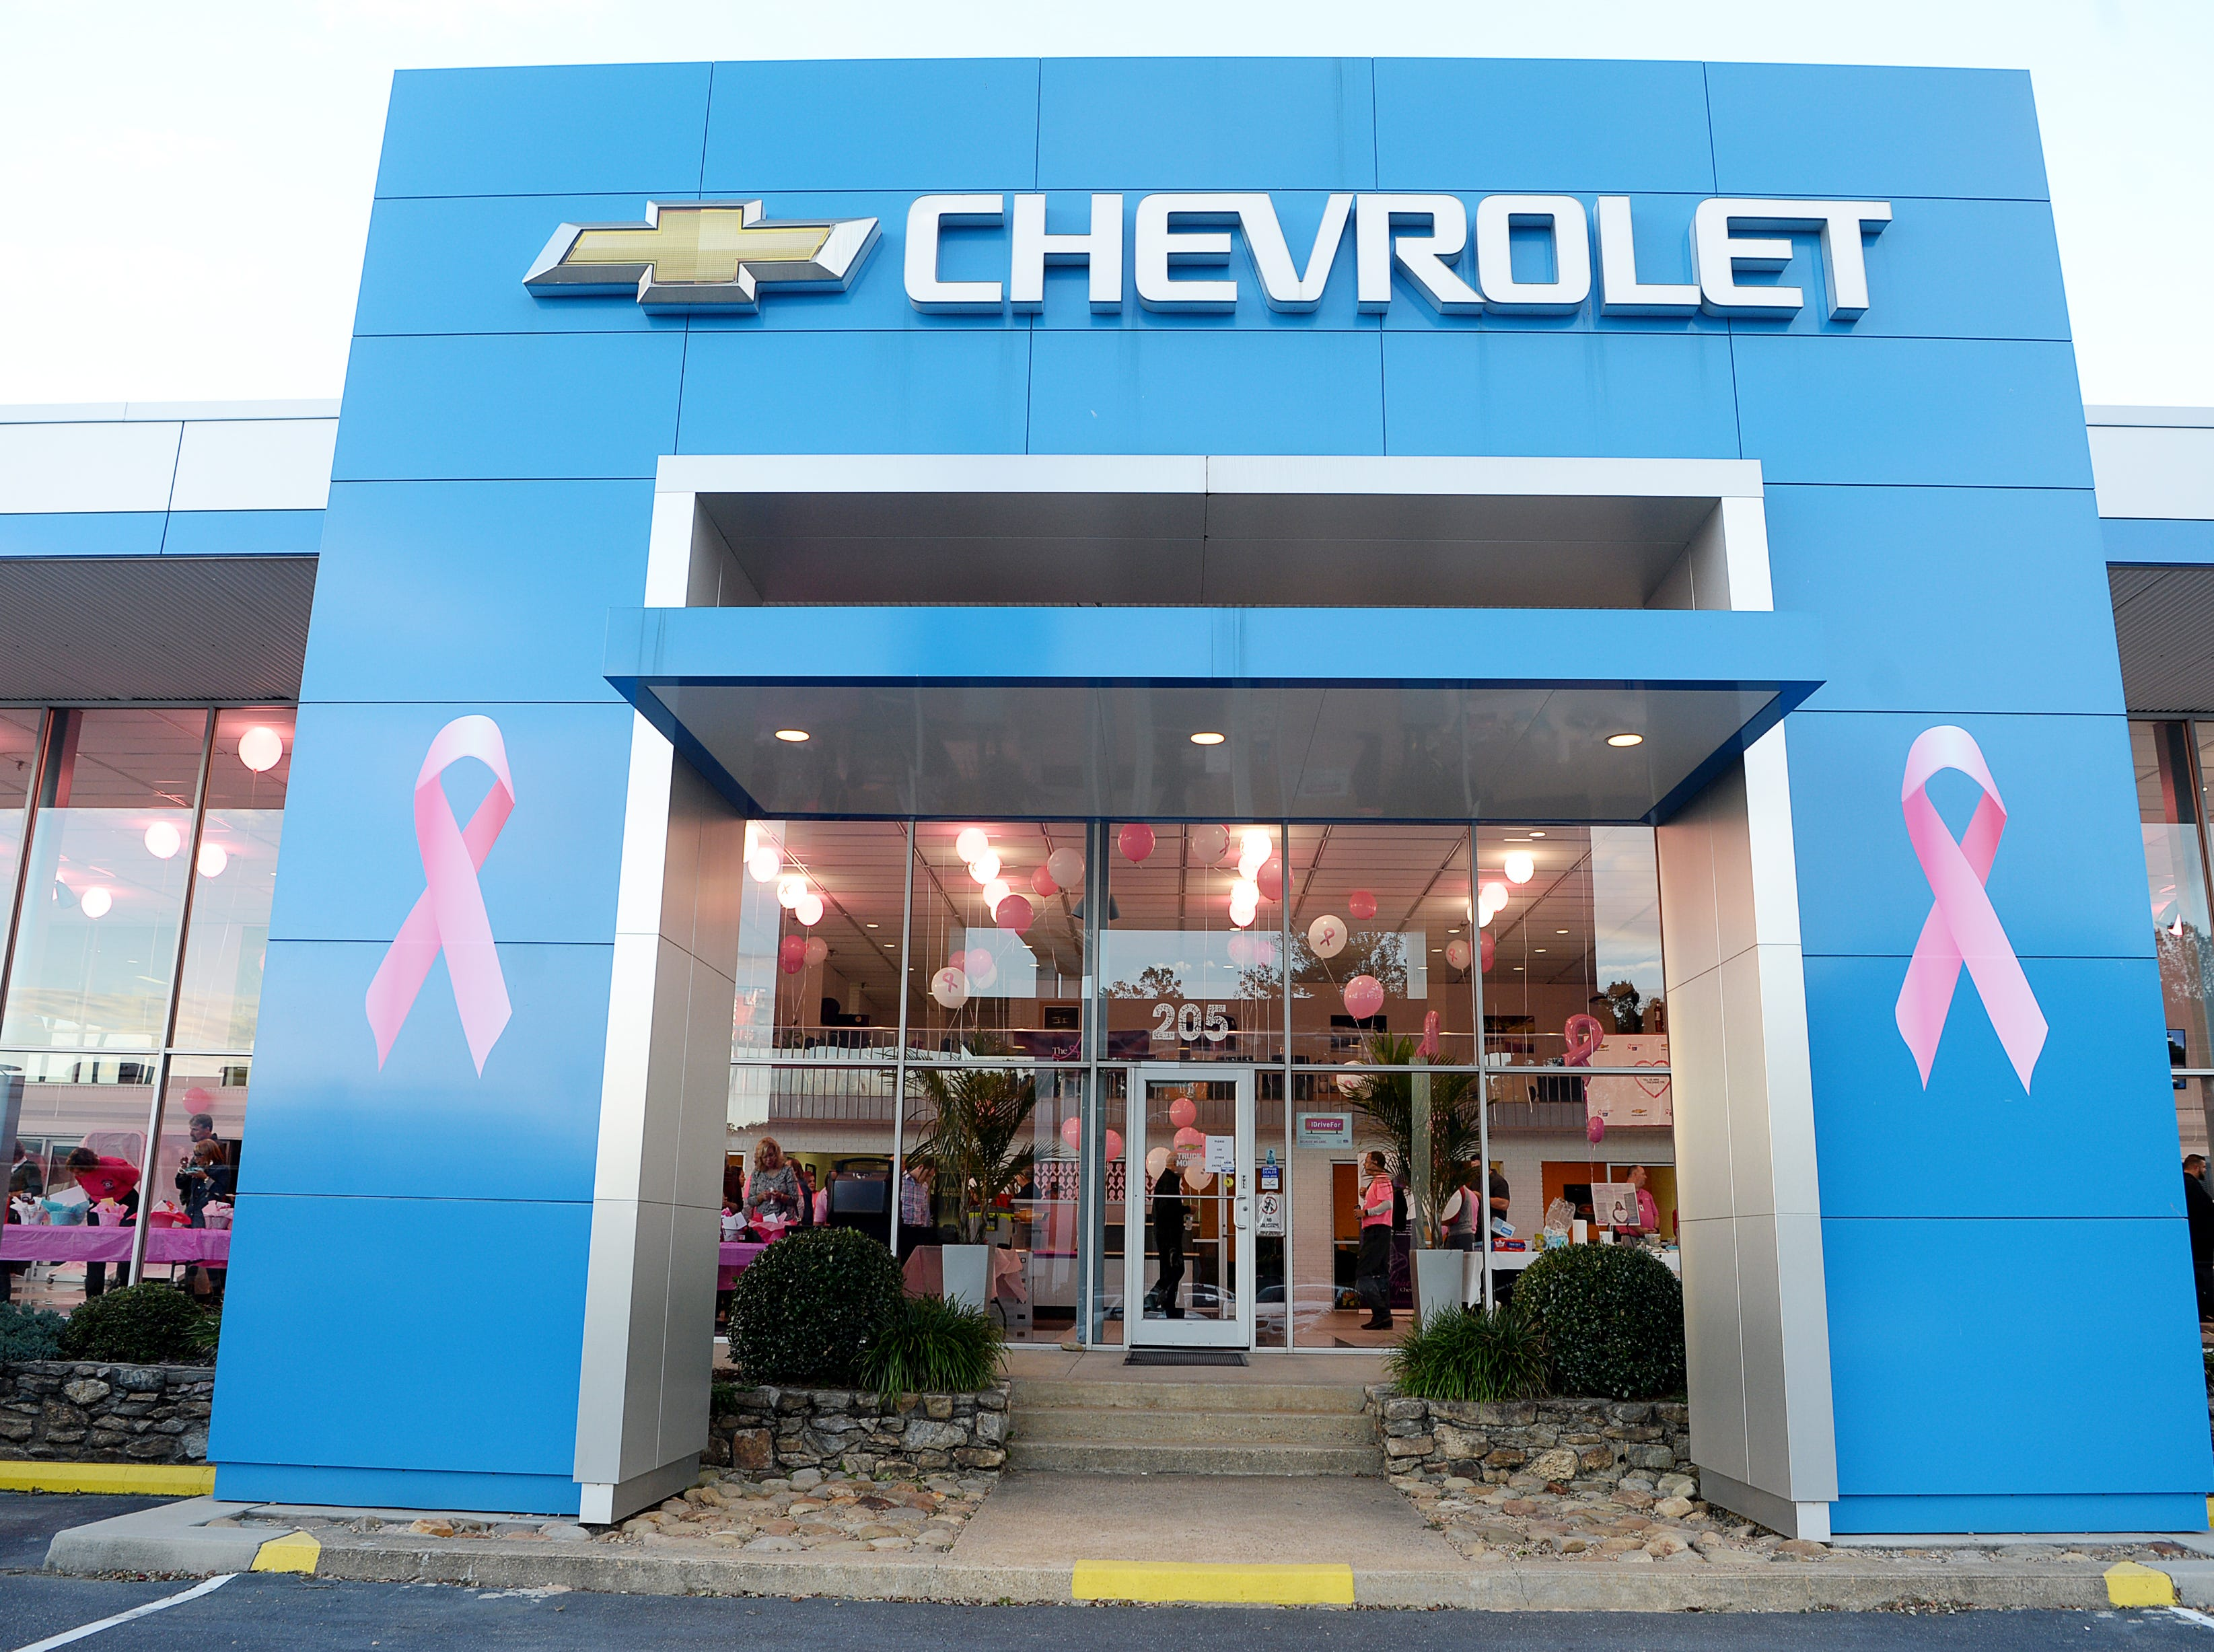 The #IDrive4 breast cancer fundraiser benefitting The Hope Chest for Women was held at Asheville Chevrolet Oct. 18, 2018. During the month of October, the dealership is donating $5 for every #AshevilleChevyDrives4 hashtag on Instagram and Twitter.